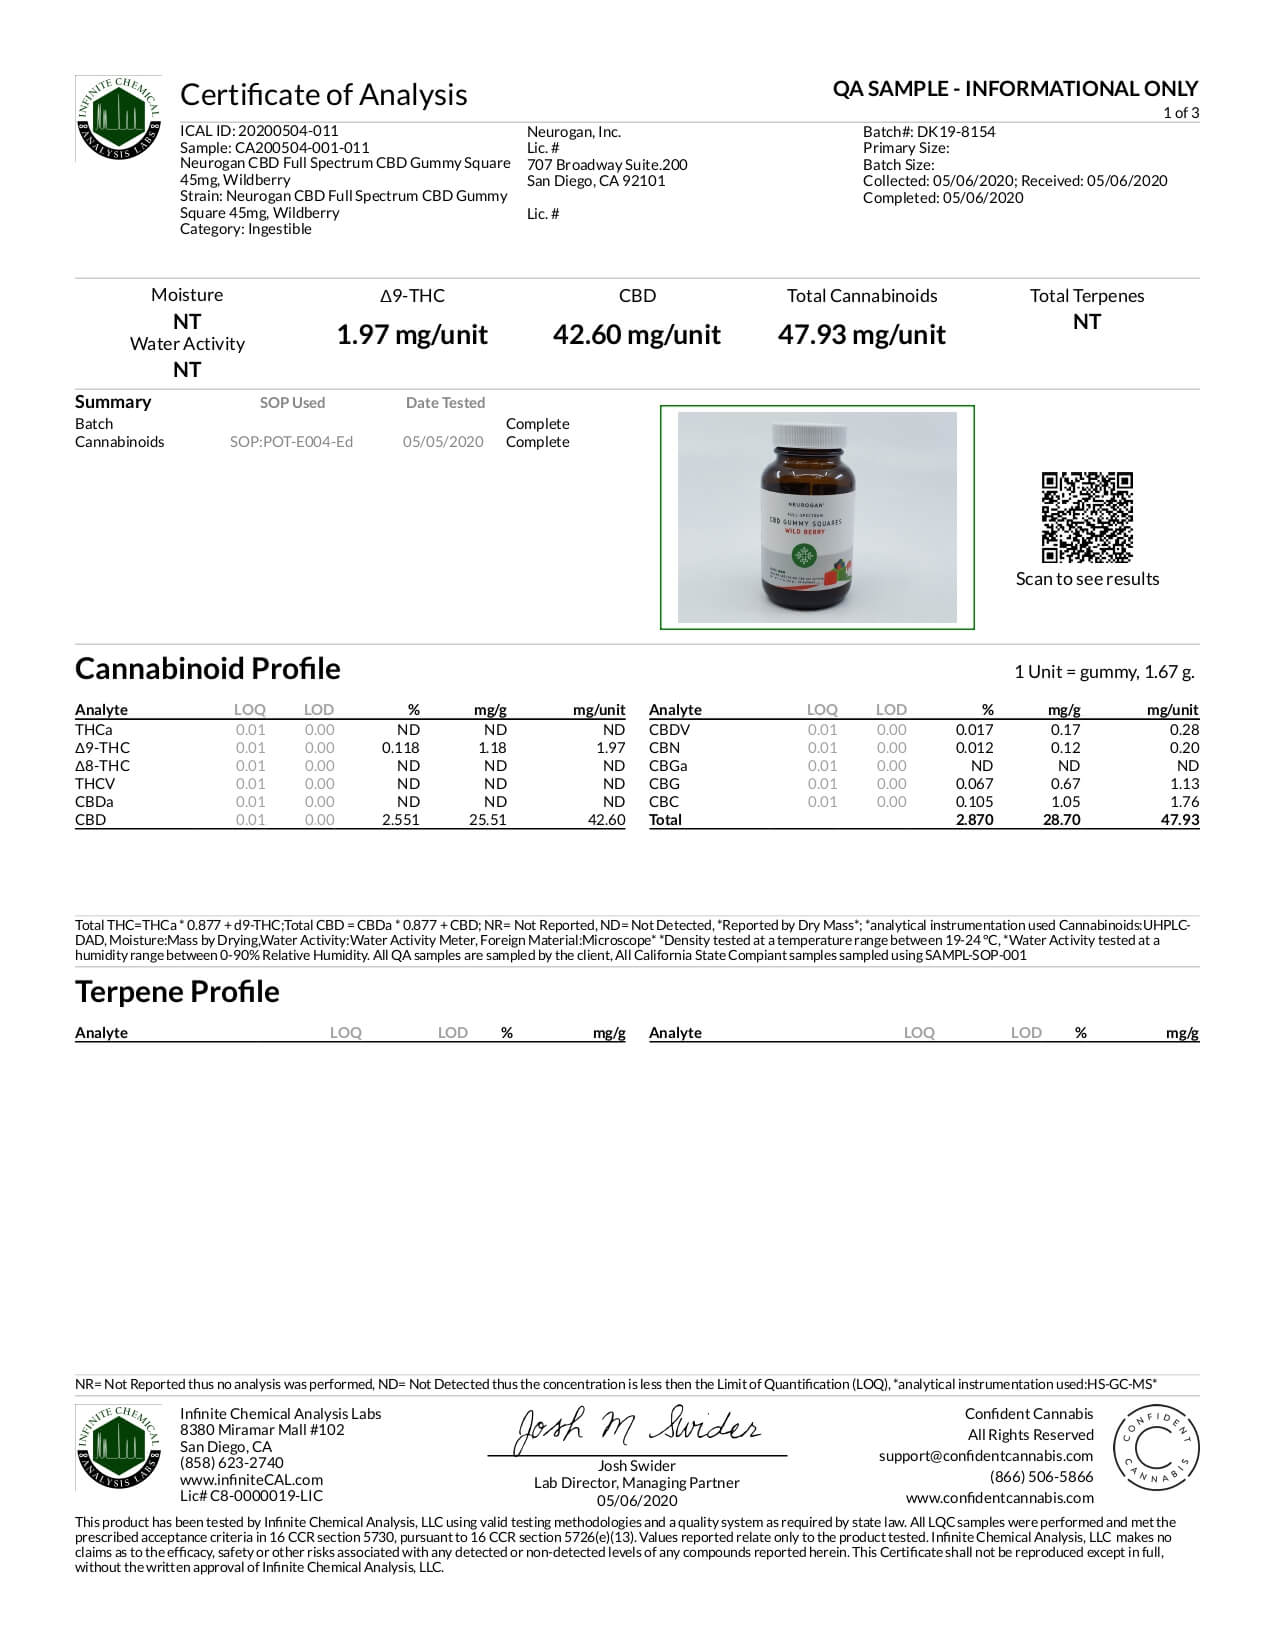 Neurogan, Inc. CBD Edible Full Spectrum Gummy Squares Wild Berry Lab Report